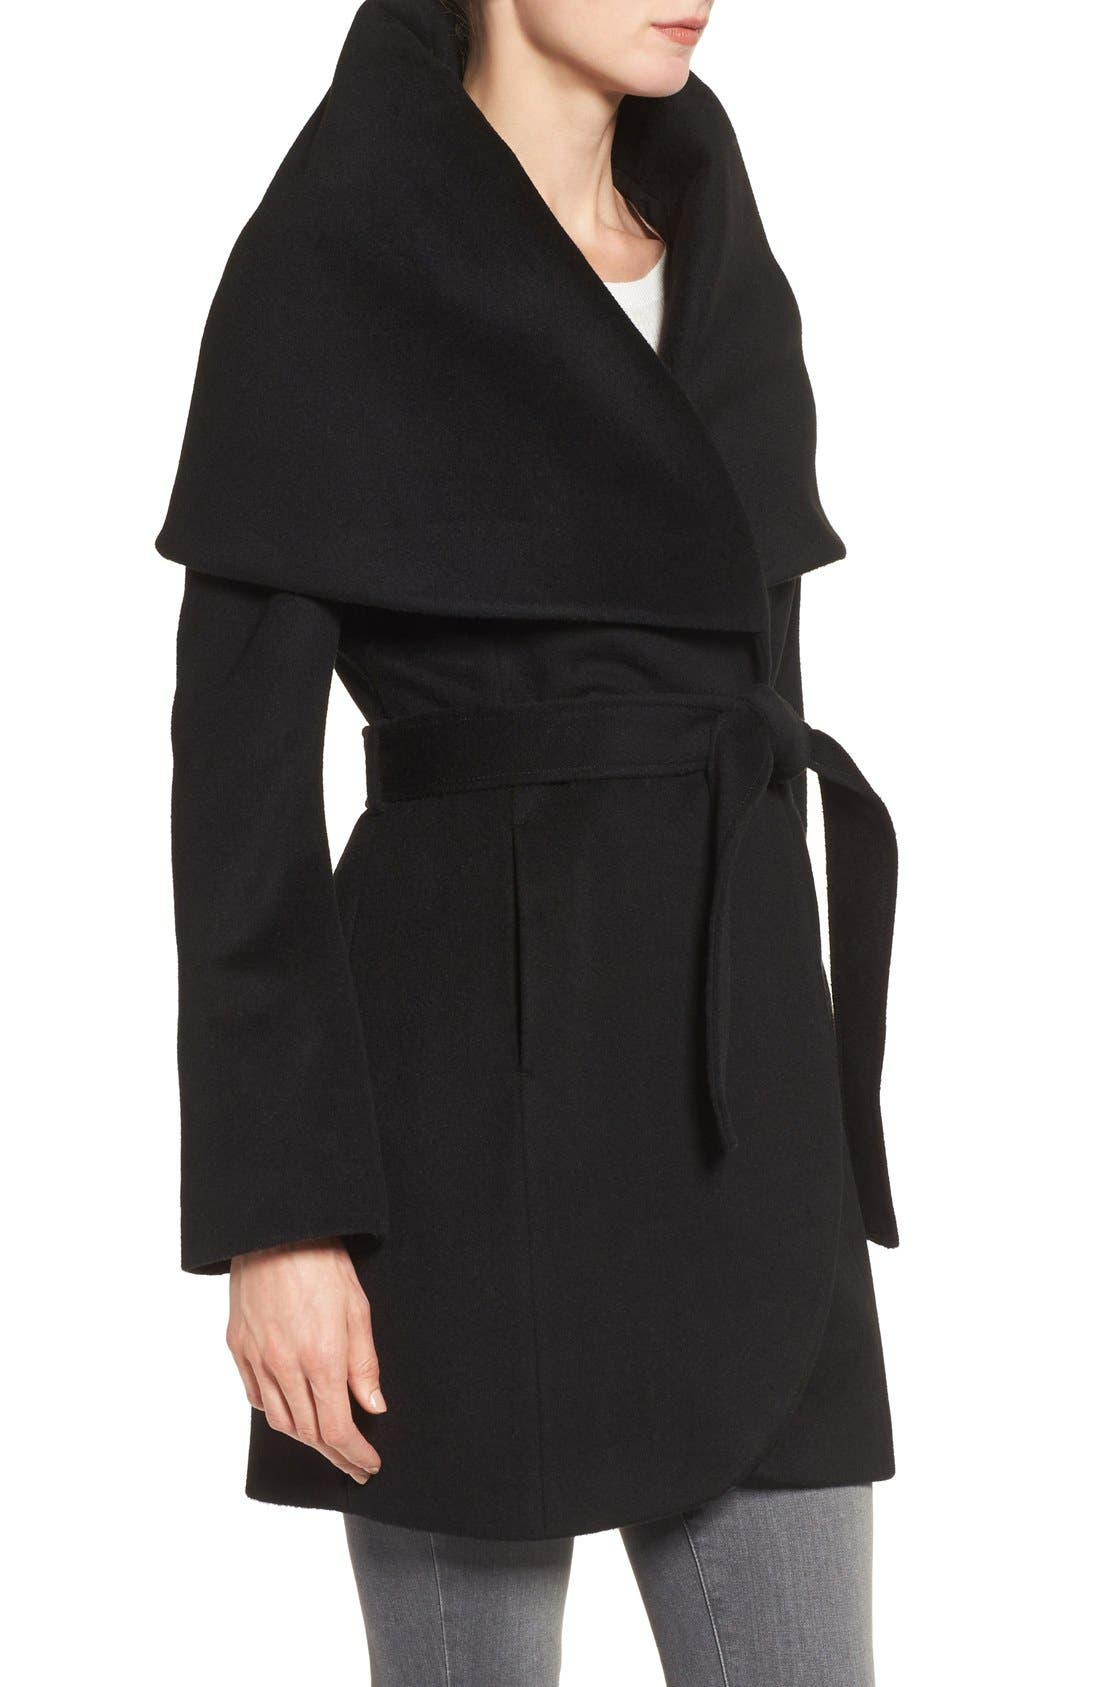 T Tahari Wool Blend Belted Wrap Coat,                             Alternate thumbnail 3, color,                             Black